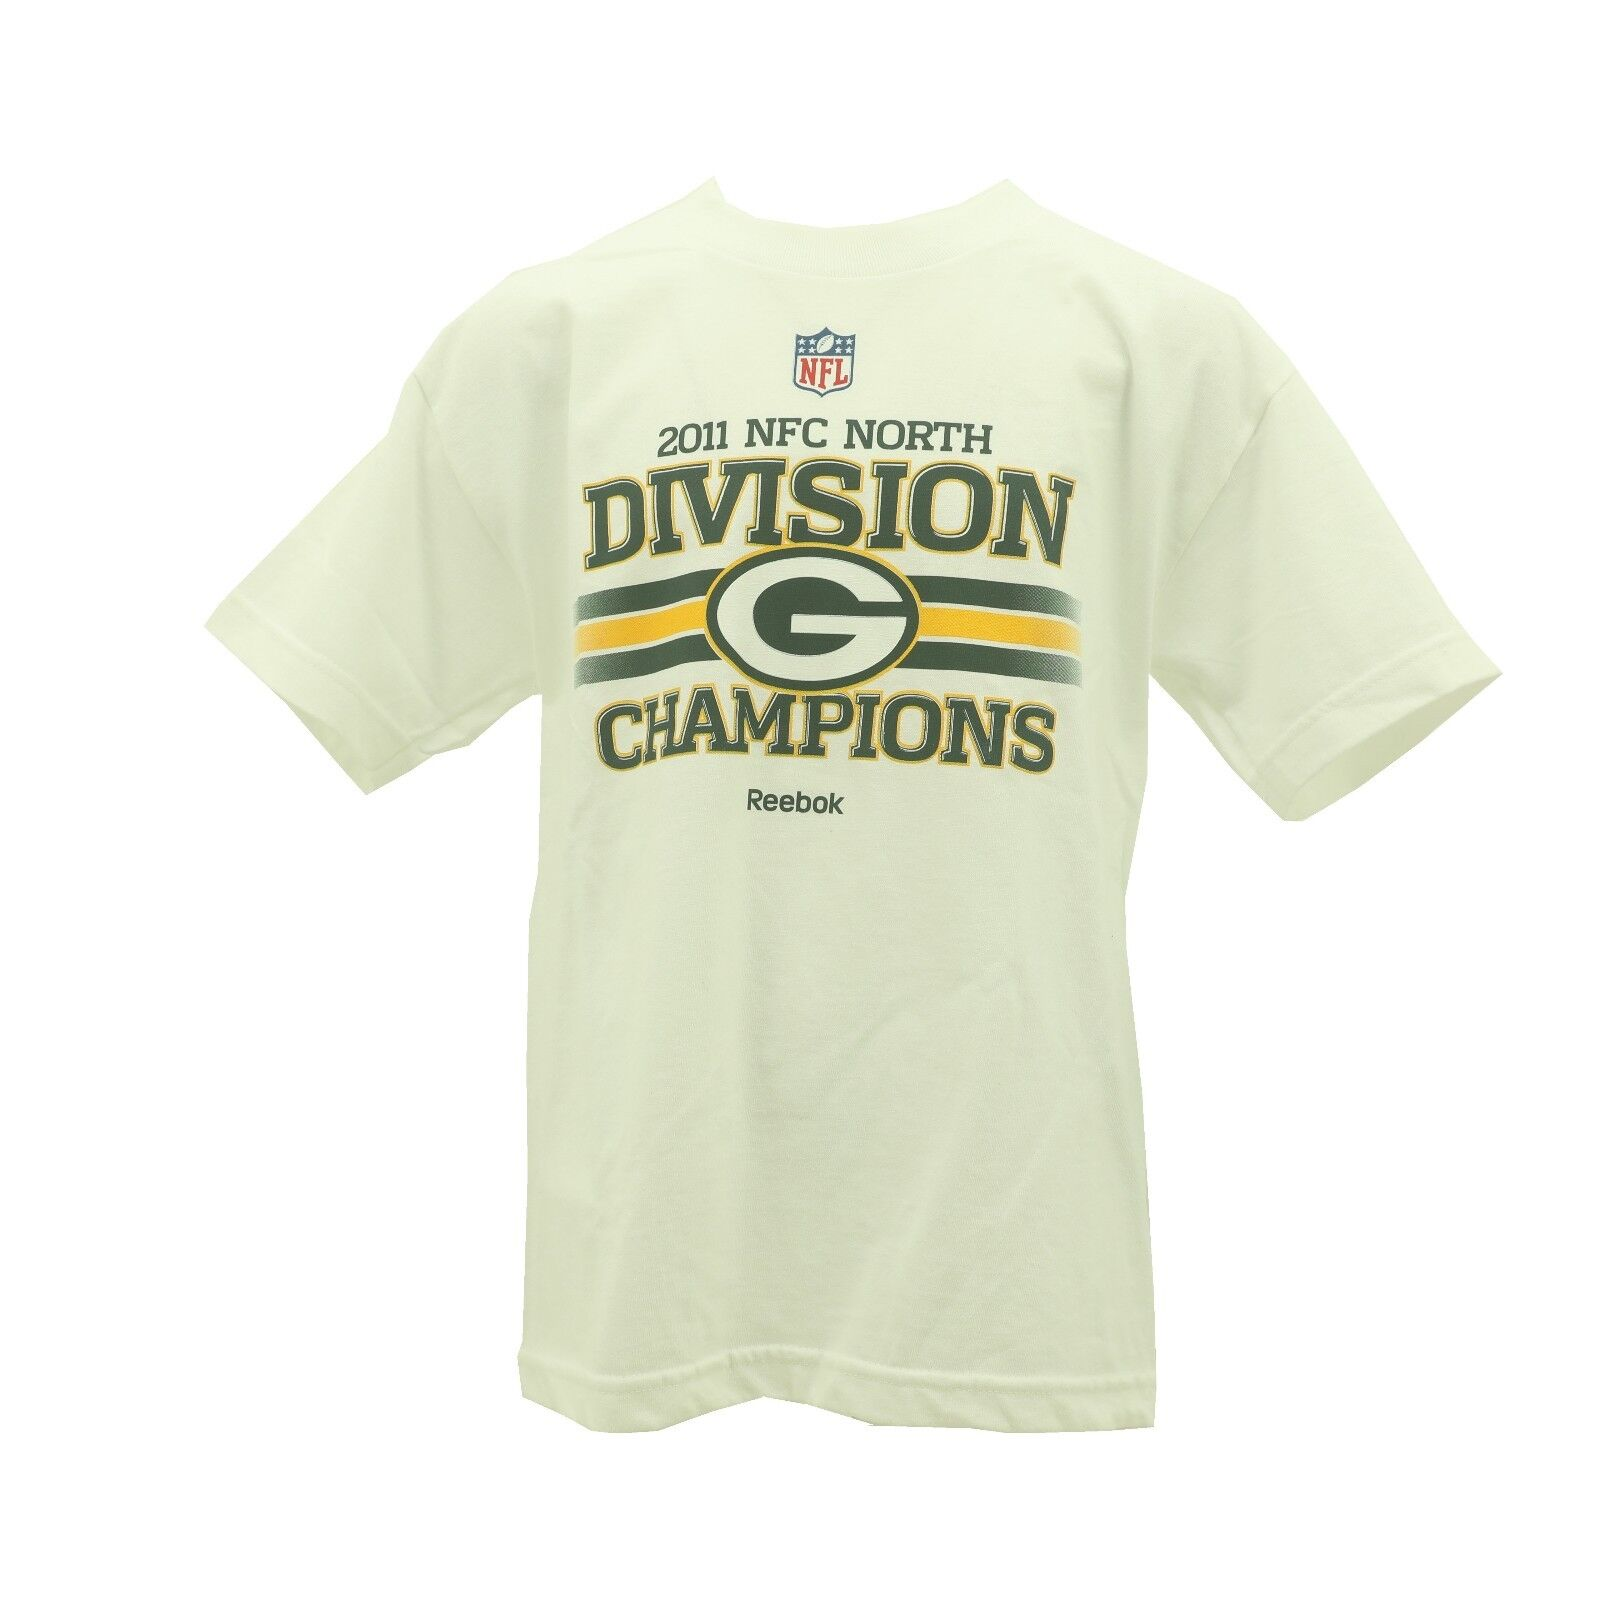 c7858c63 Details about NFL Green Bay Packers Kids Youth Size Team Apparel Official  T-Shirt New W Tags